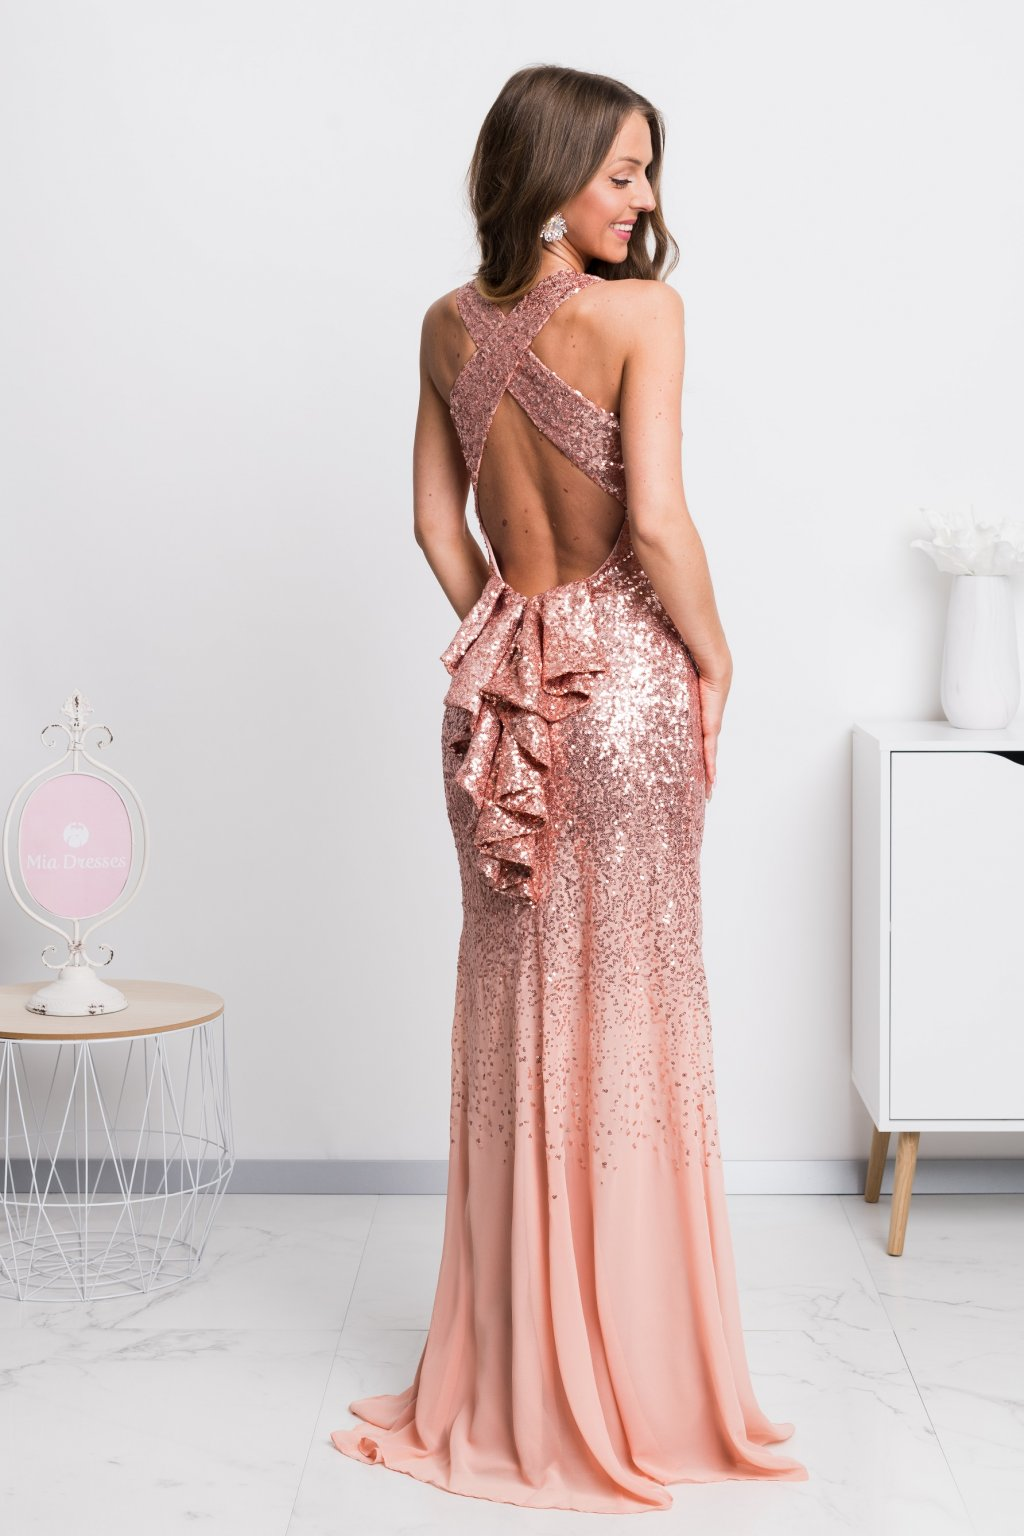 Peach sequin backless formal dress